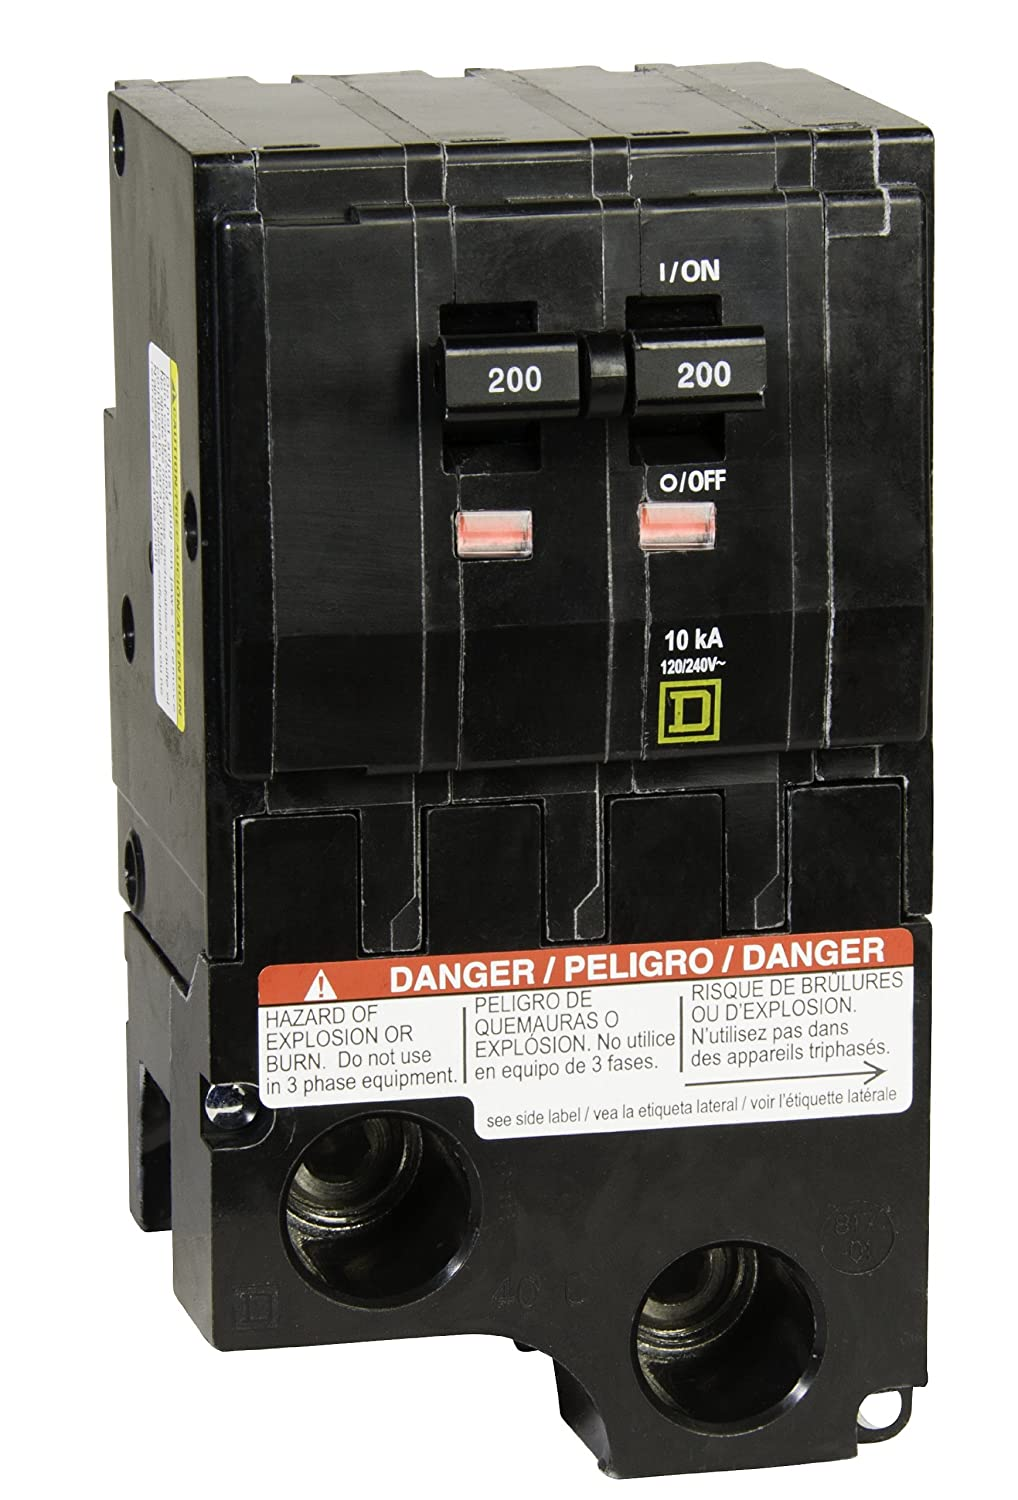 Square D By Schneider Electric Qo2200cp Qo 200 Amp Two Pole Circuit 3 Phase Fuse Box Breaker